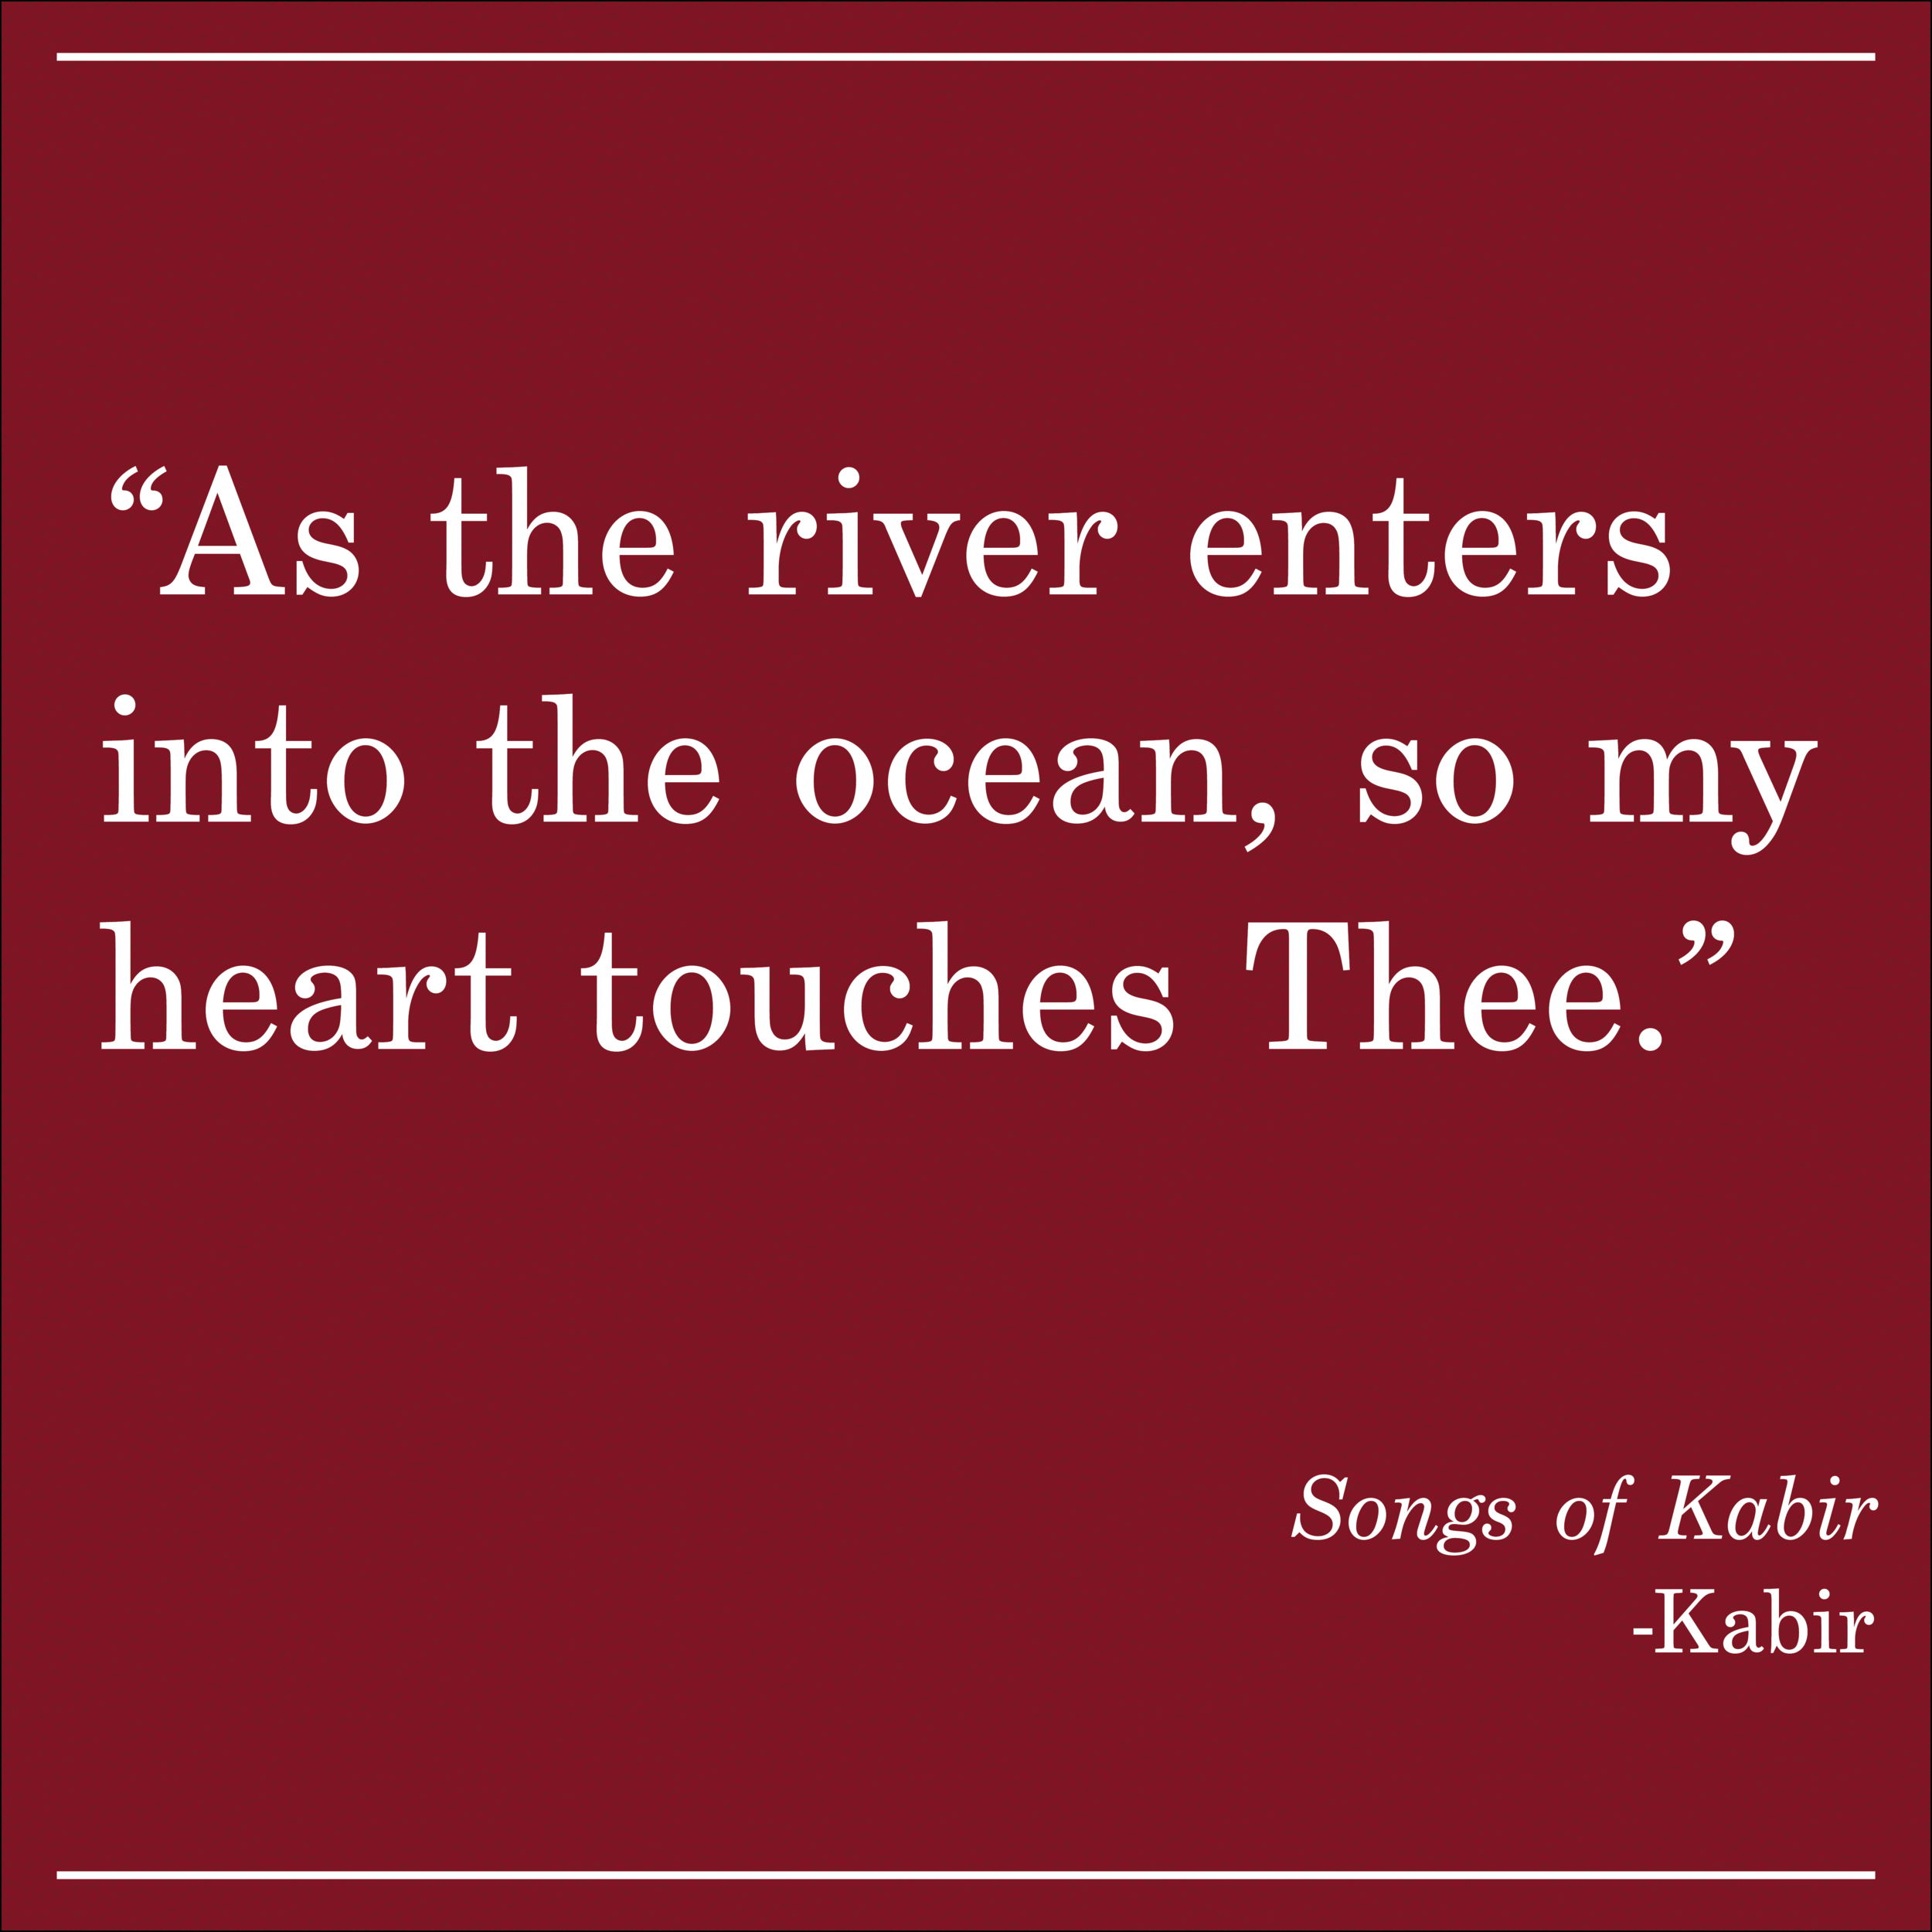 Daily Quote Songs of Kabir by Kabir